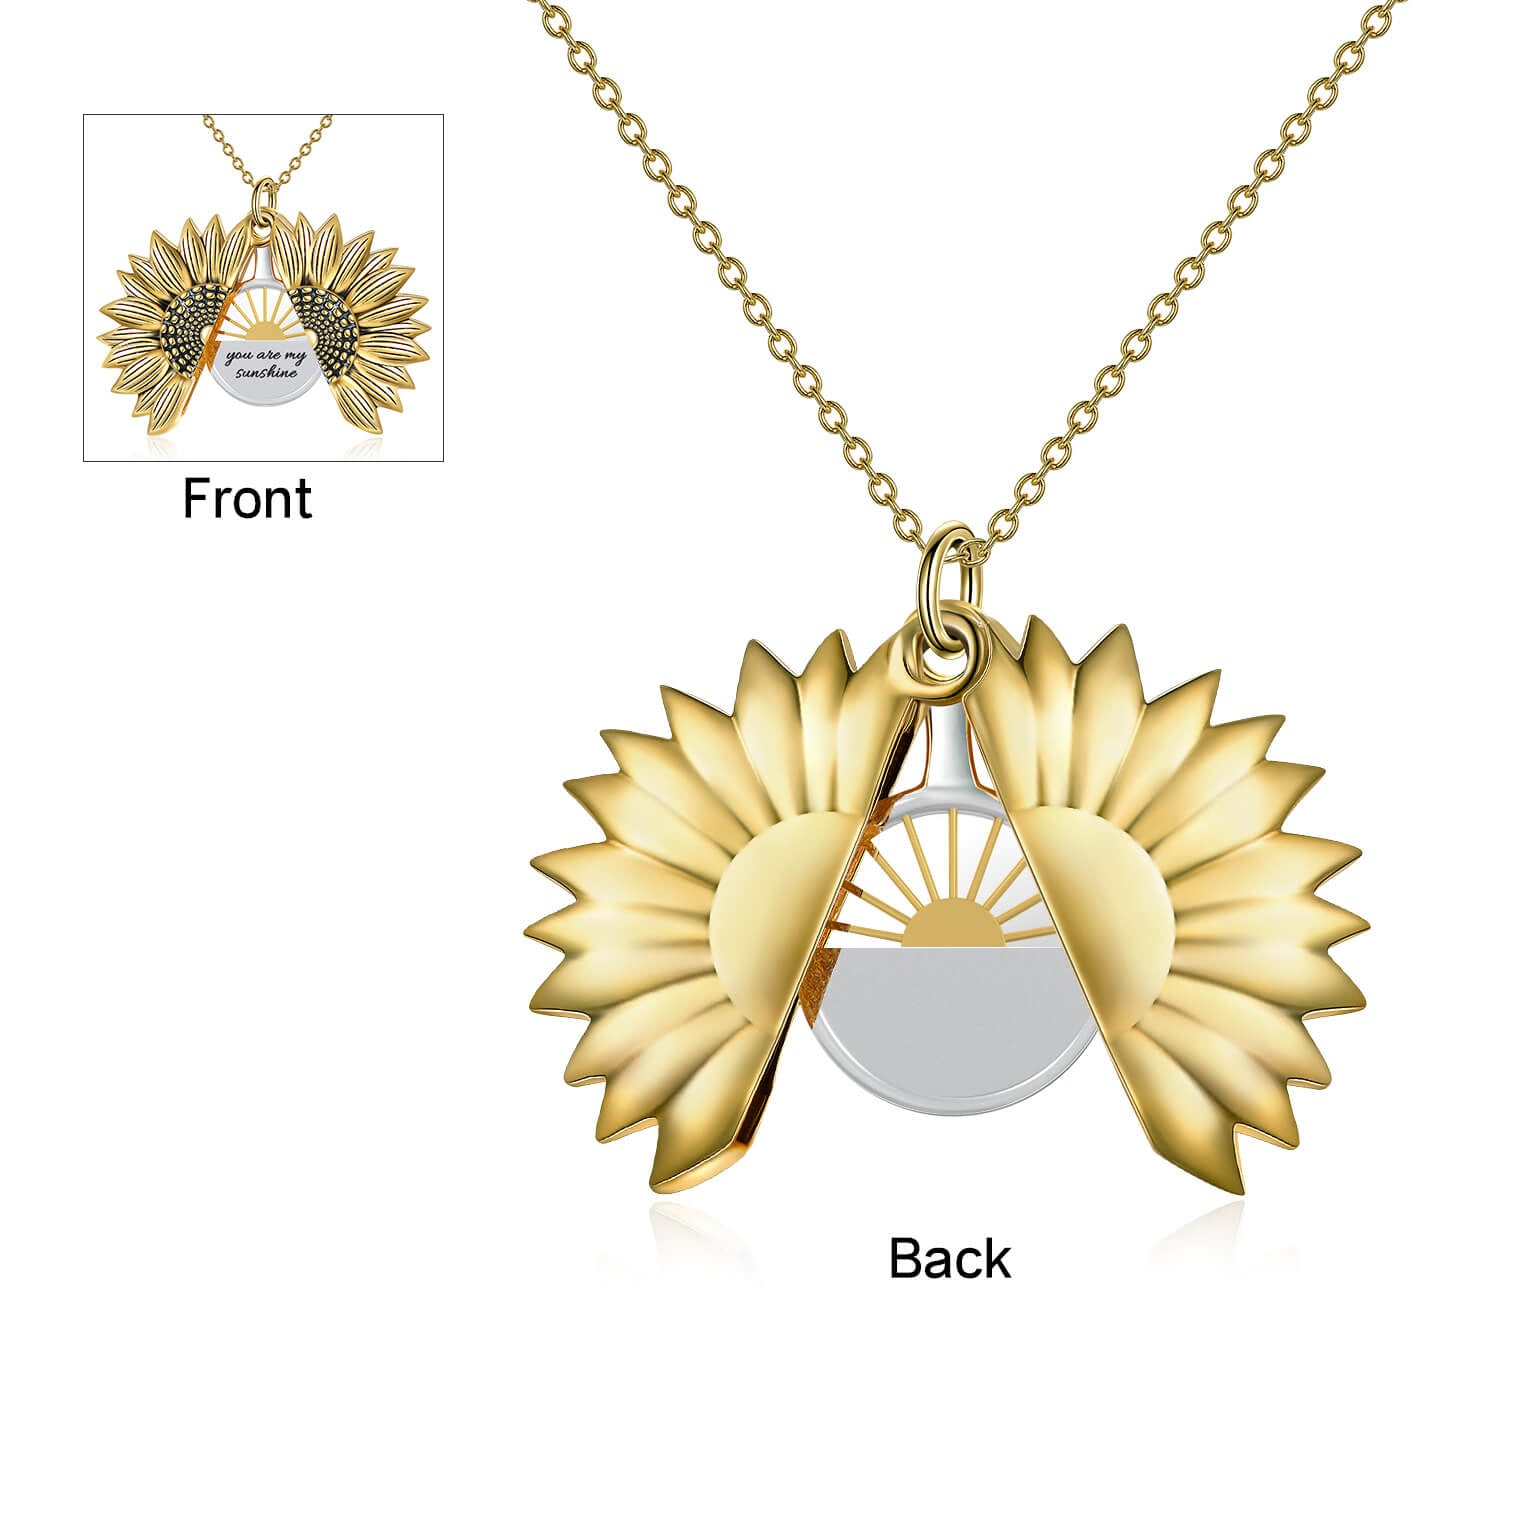 925 Sterling Silver Vintage Customized Open Locket You Are My  Sunshine Sunflower Pendant Necklace - onlyone